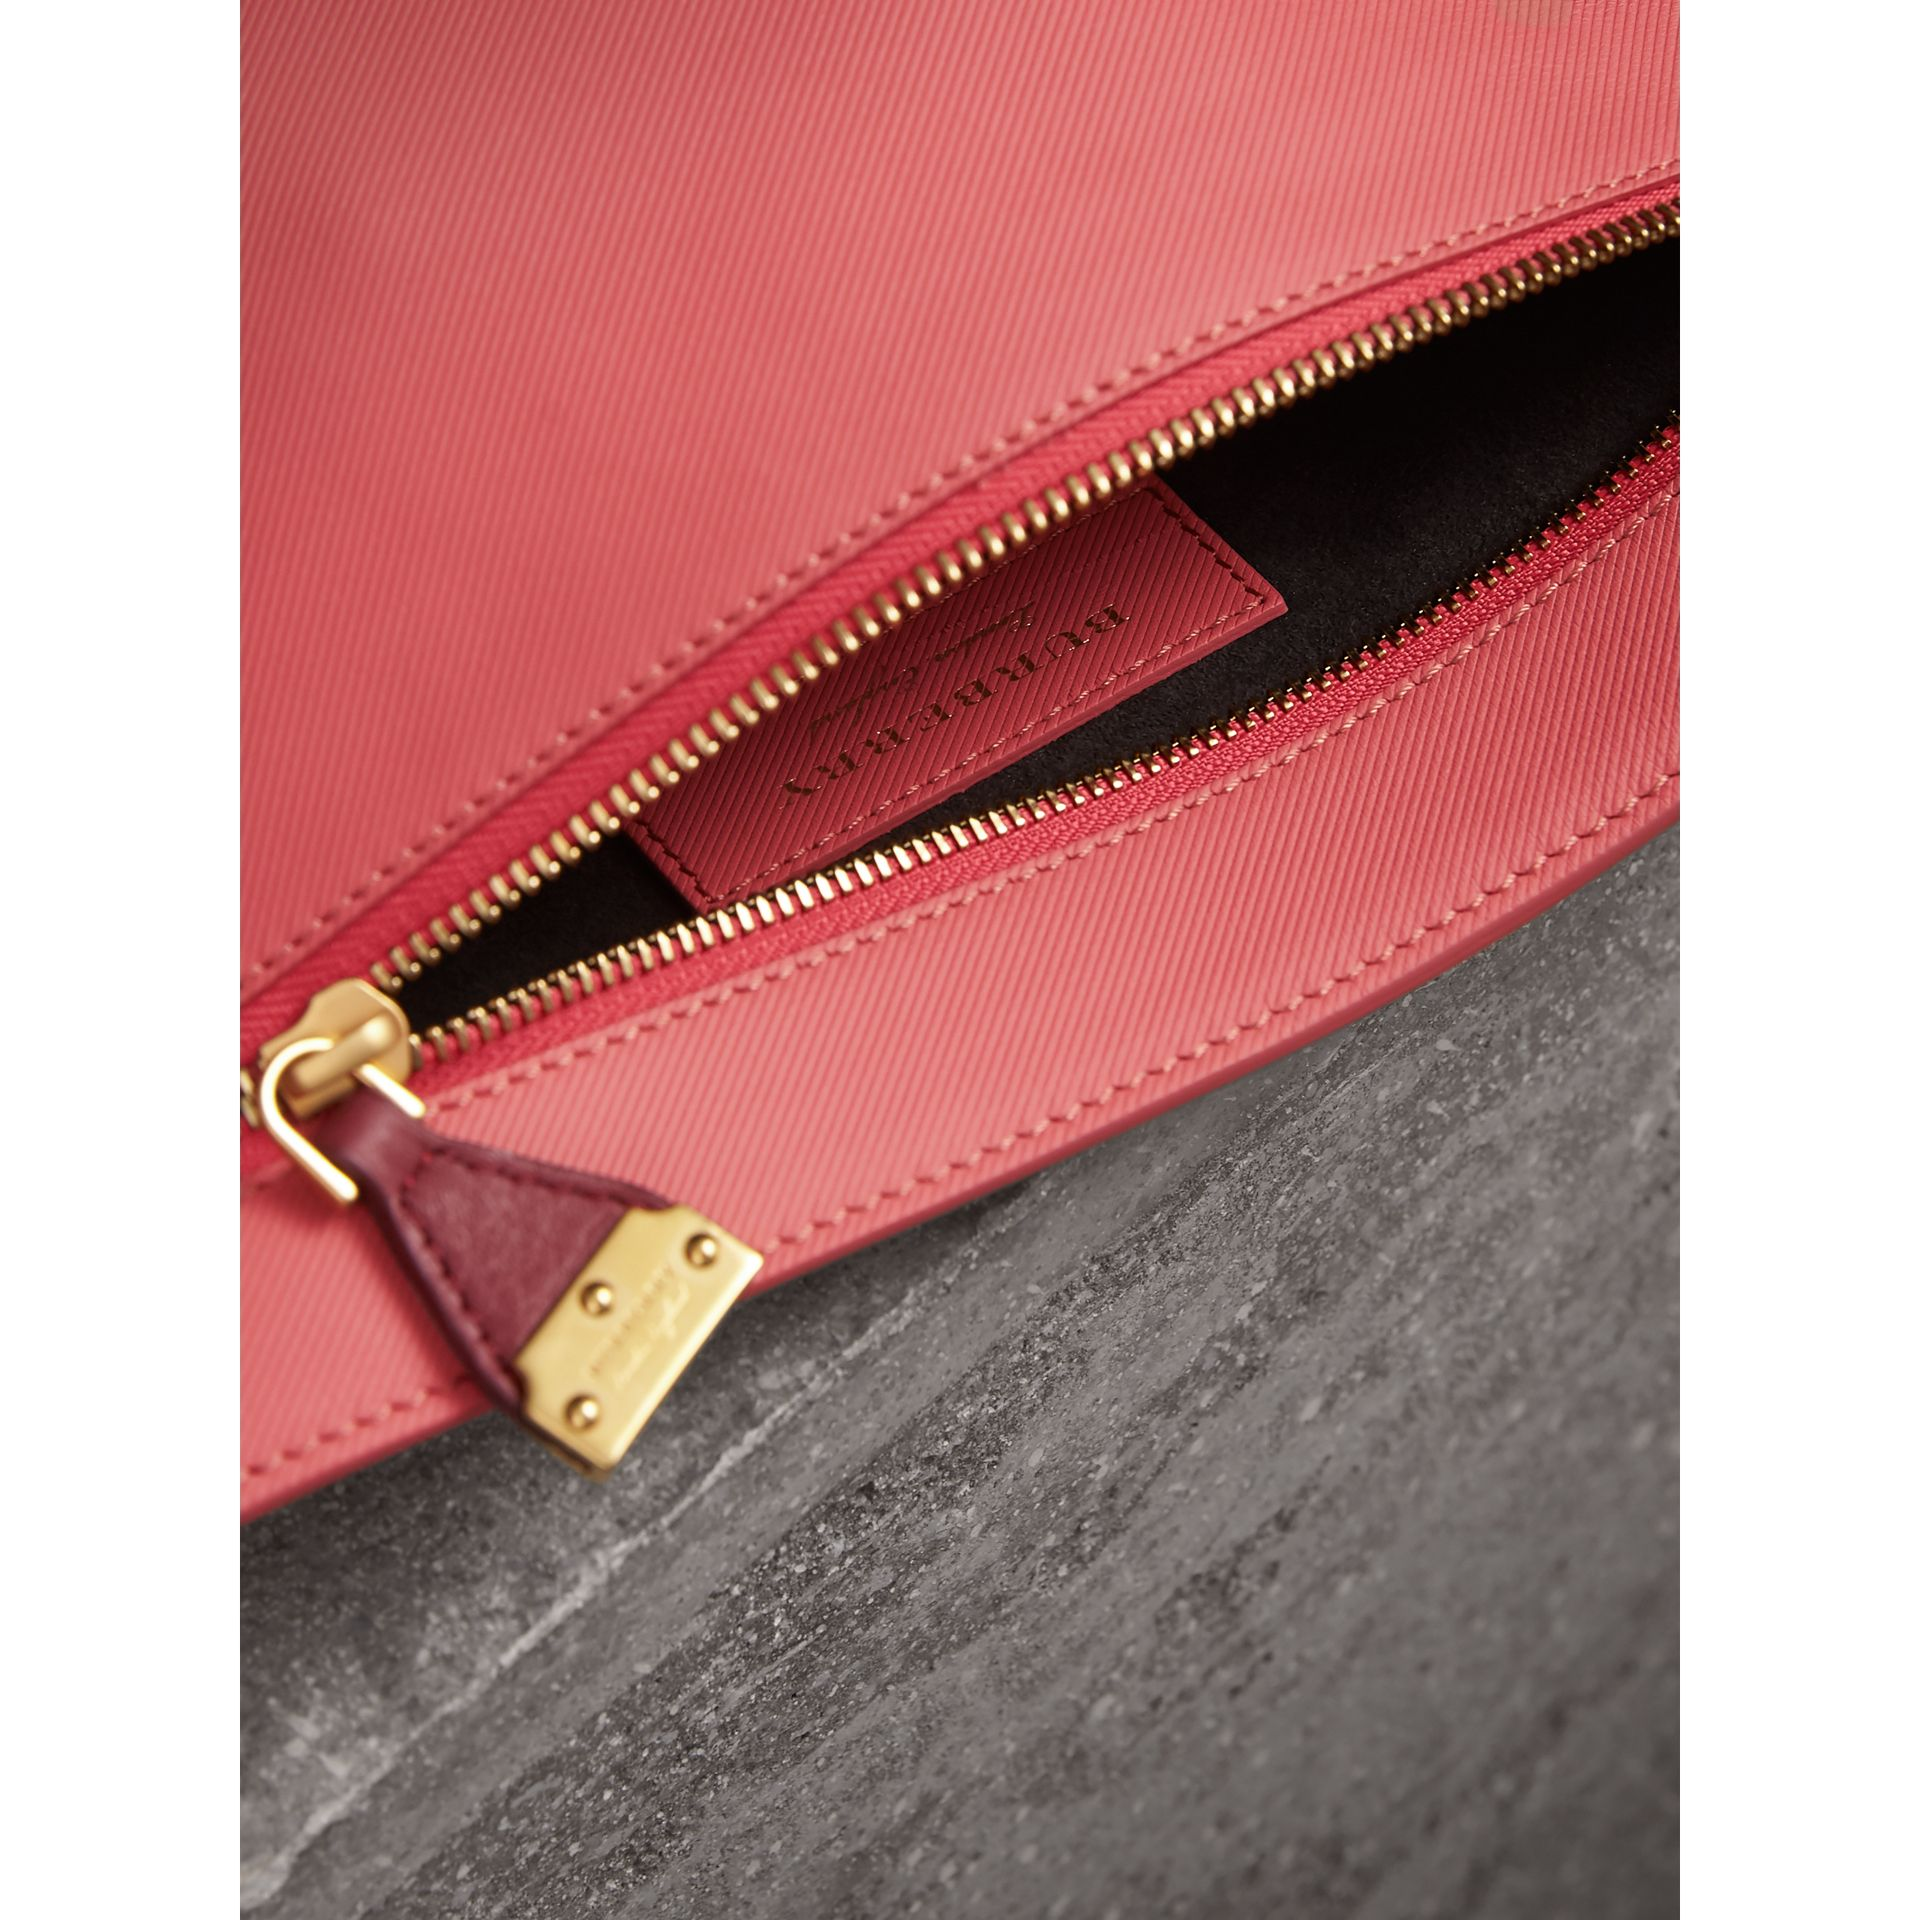 Pochette wristlet en cuir trench bicolore (Rose Blossom/rouge Antique) - Femme | Burberry - photo de la galerie 5